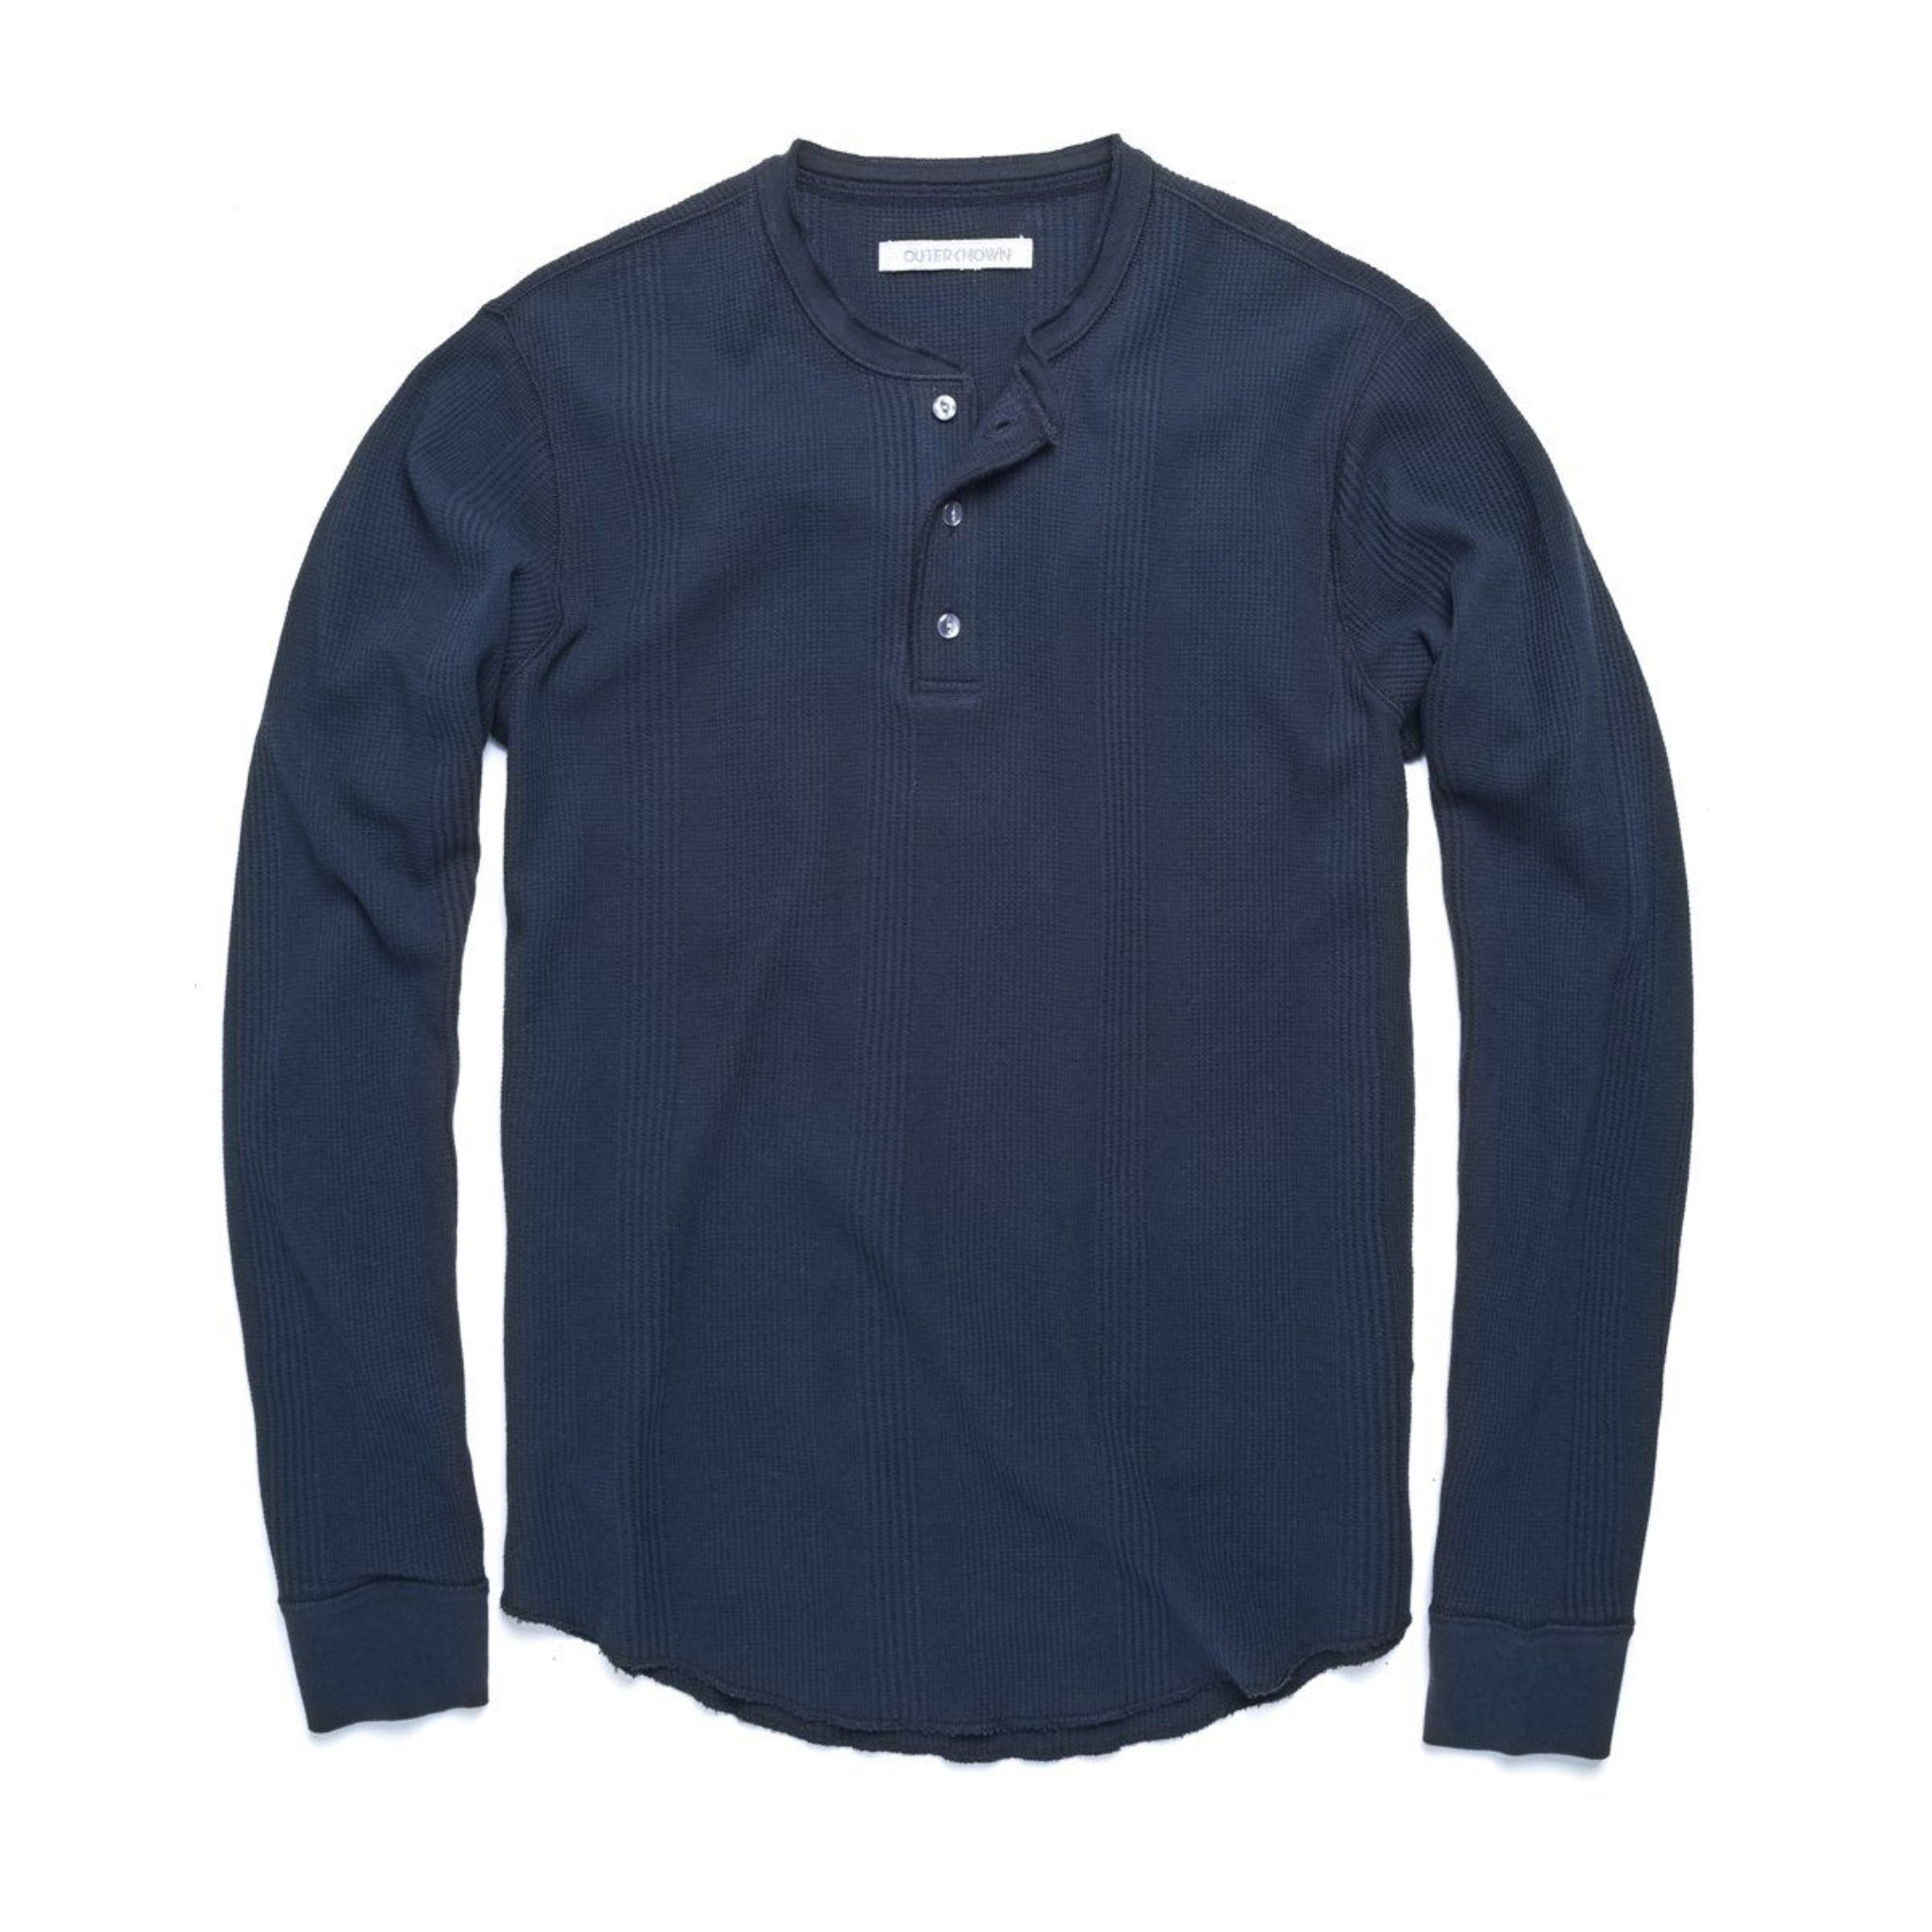 Outerknown Arroyo Thermal Henley - Marine